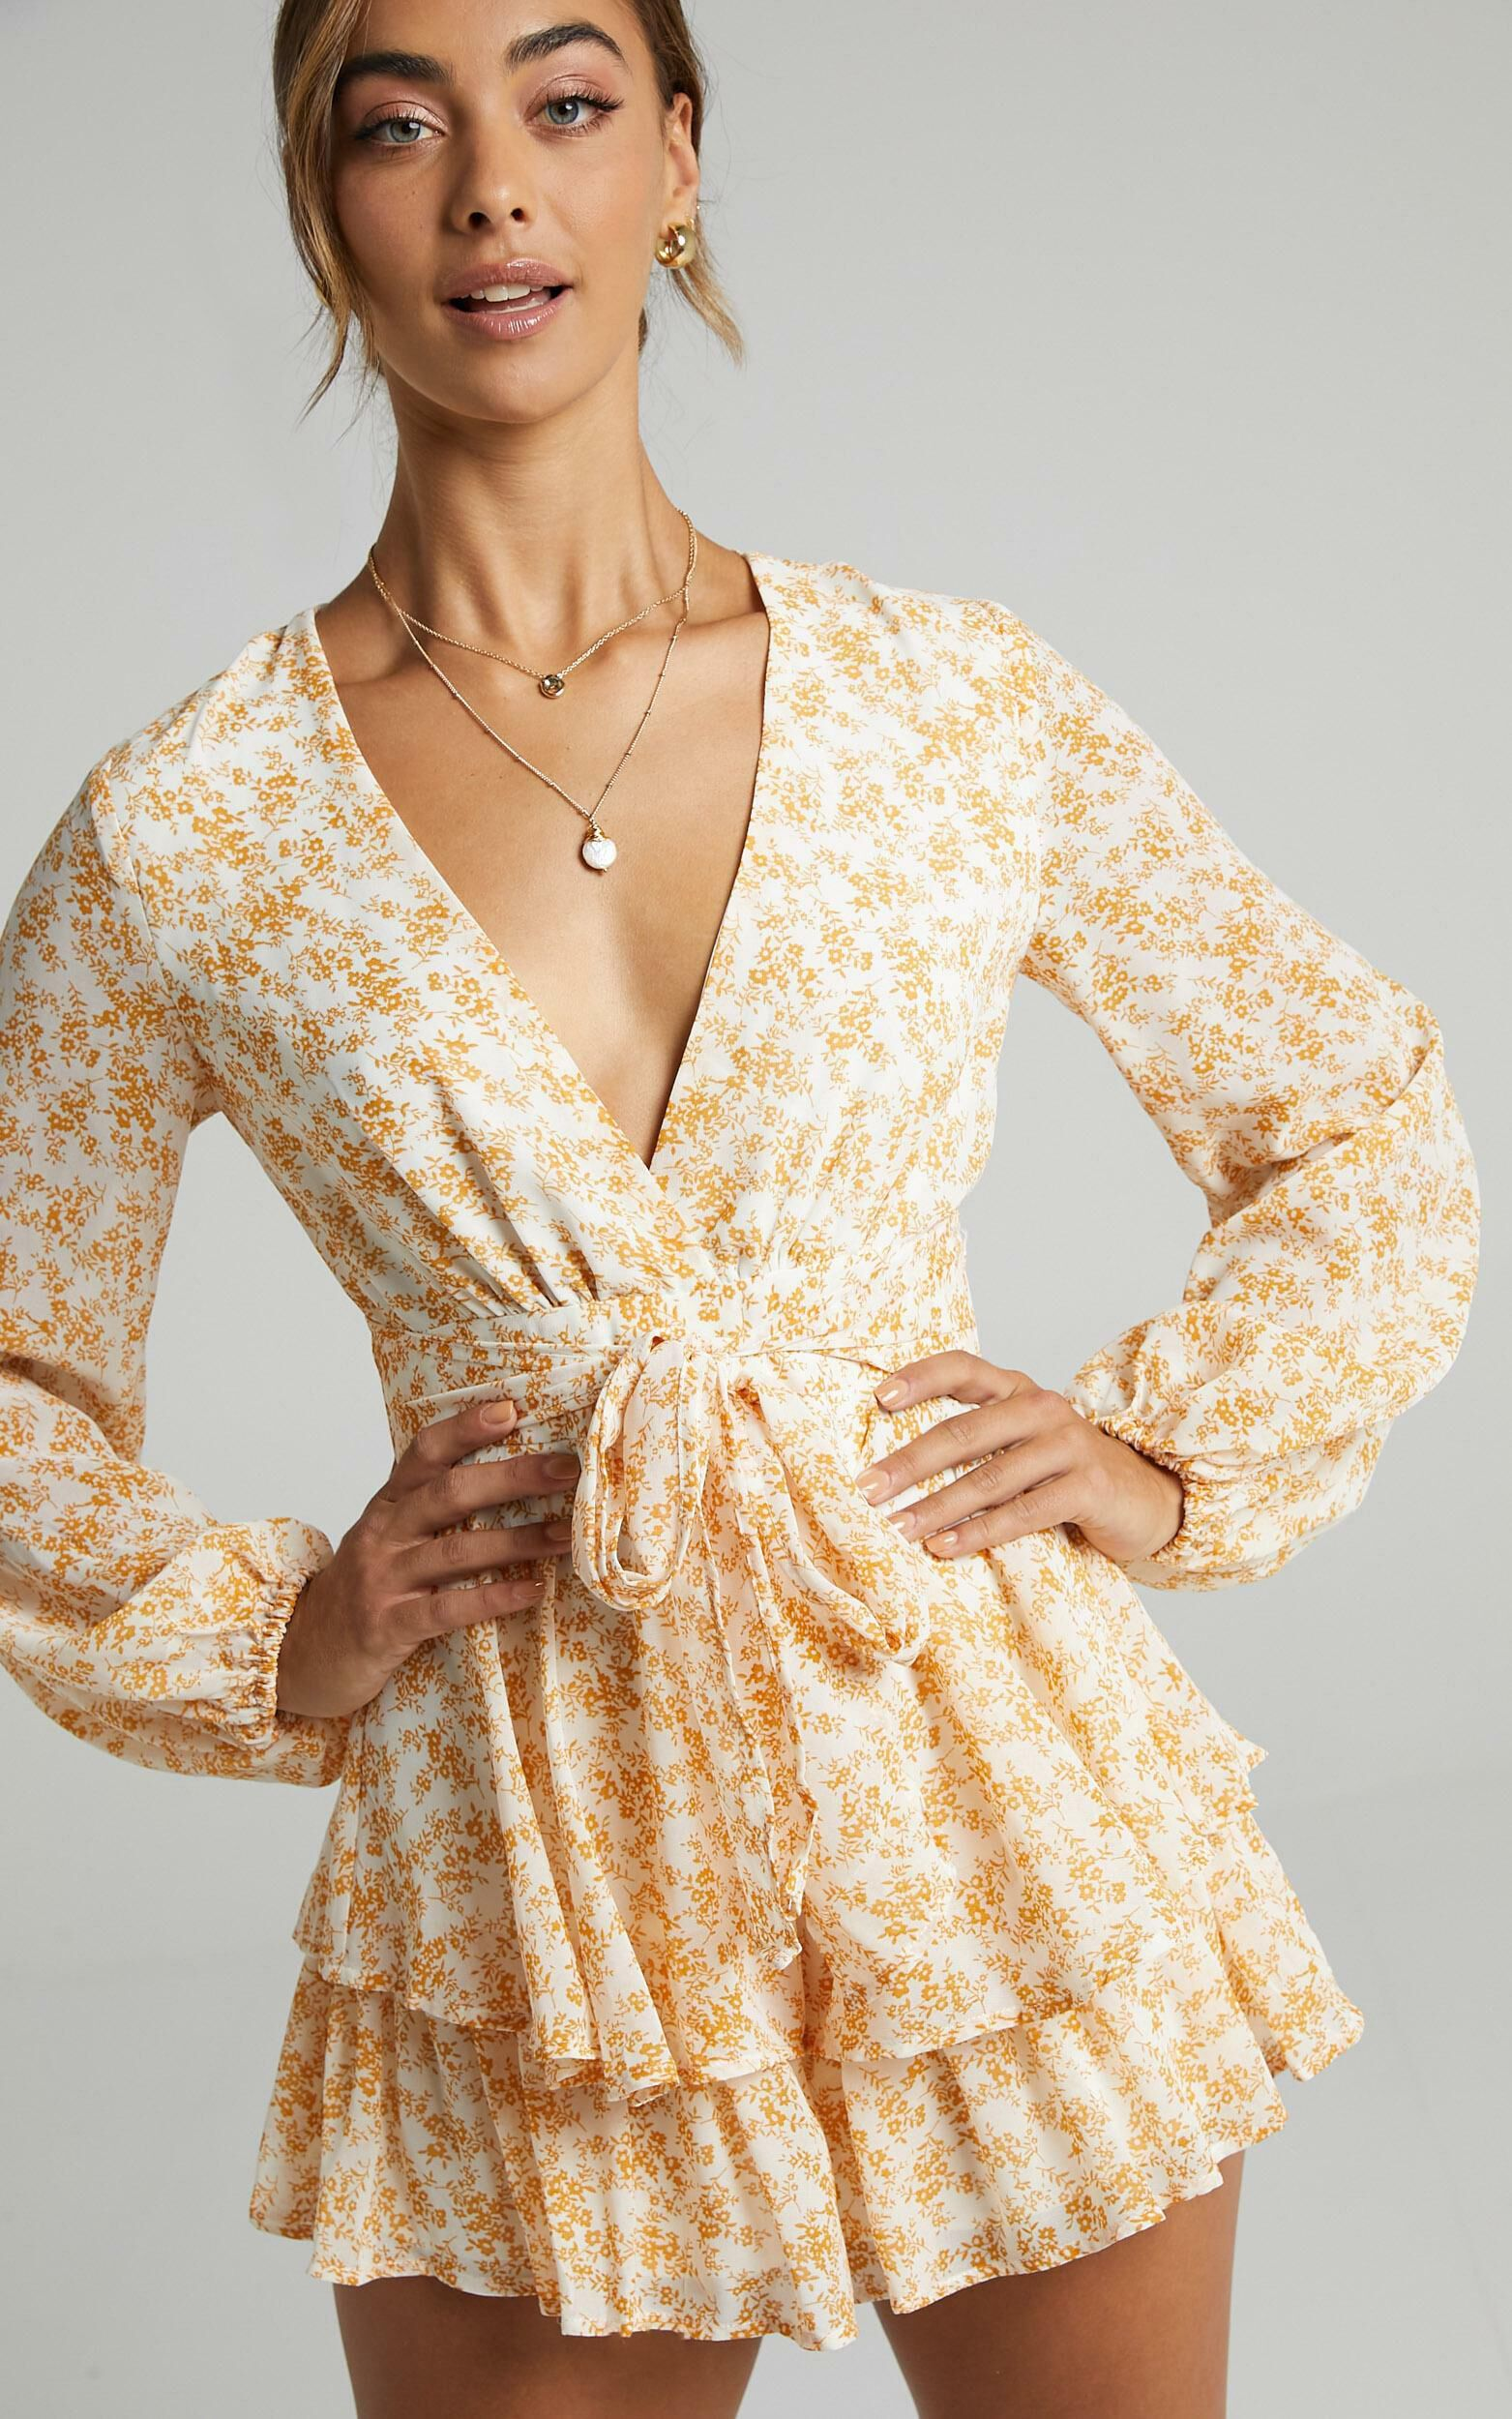 Monique Playsuit in Yellow Floral - 06, YEL3, super-hi-res image number null